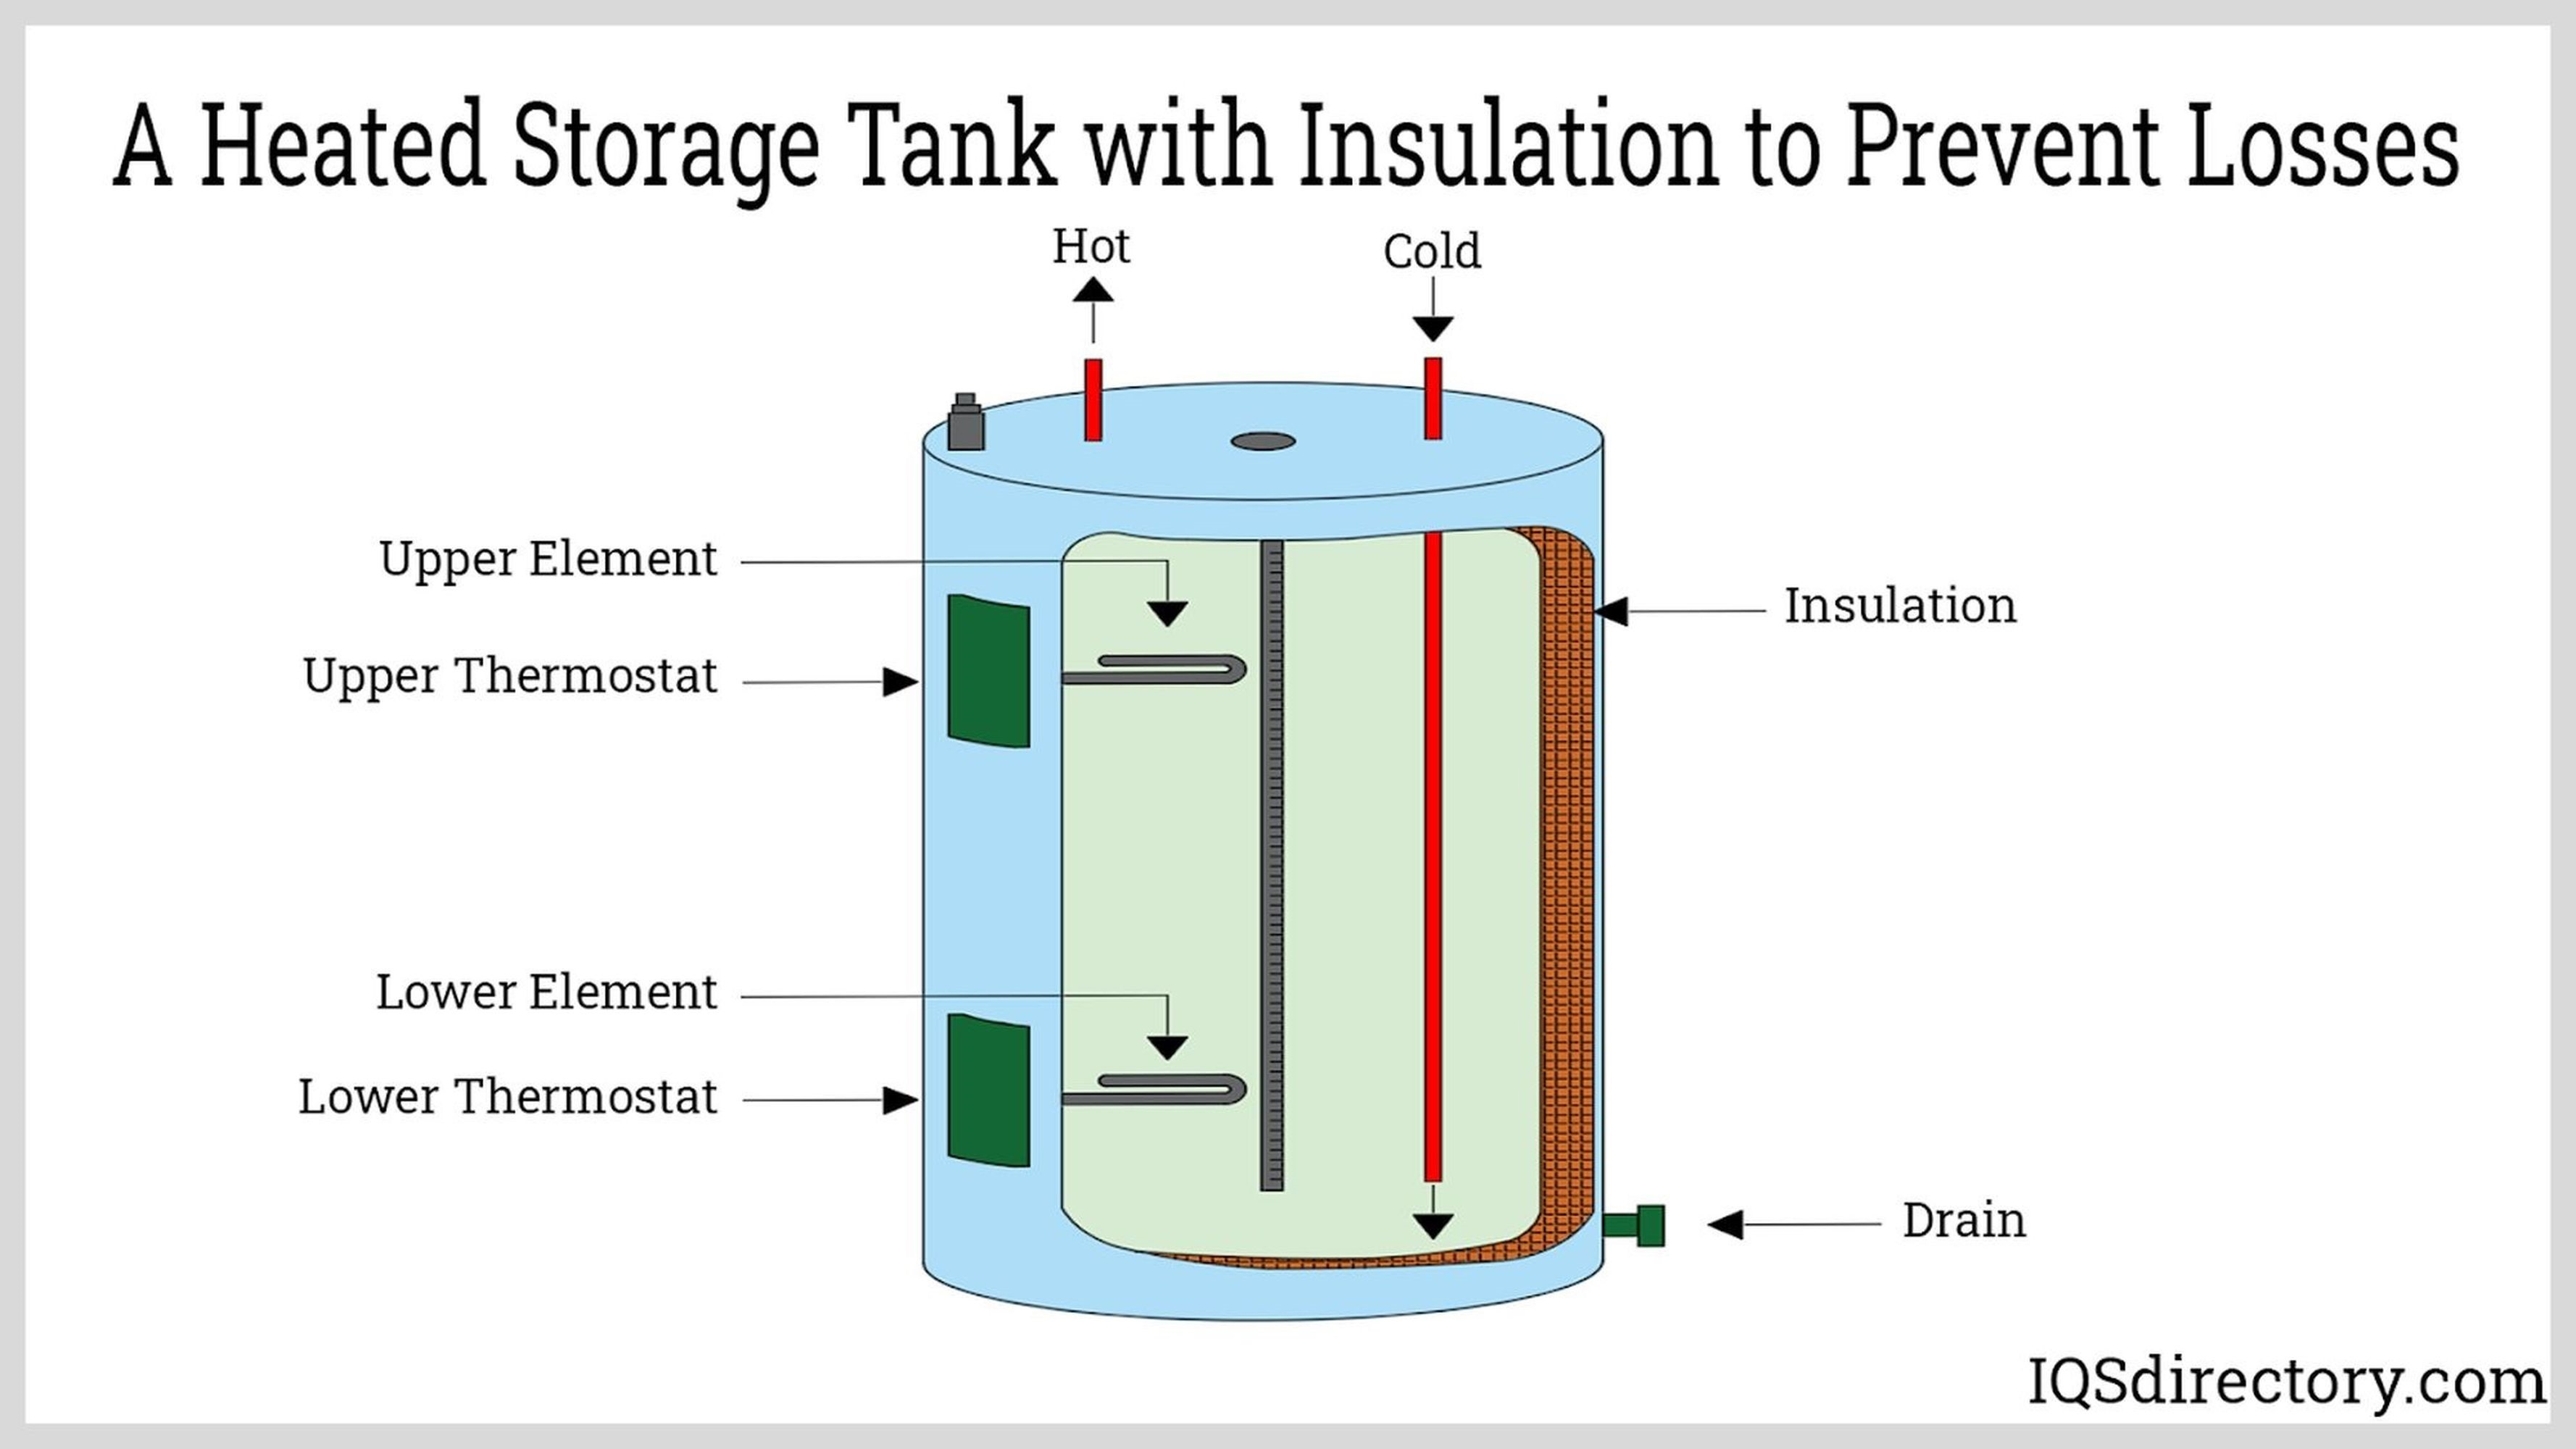 Heated Storage Tank